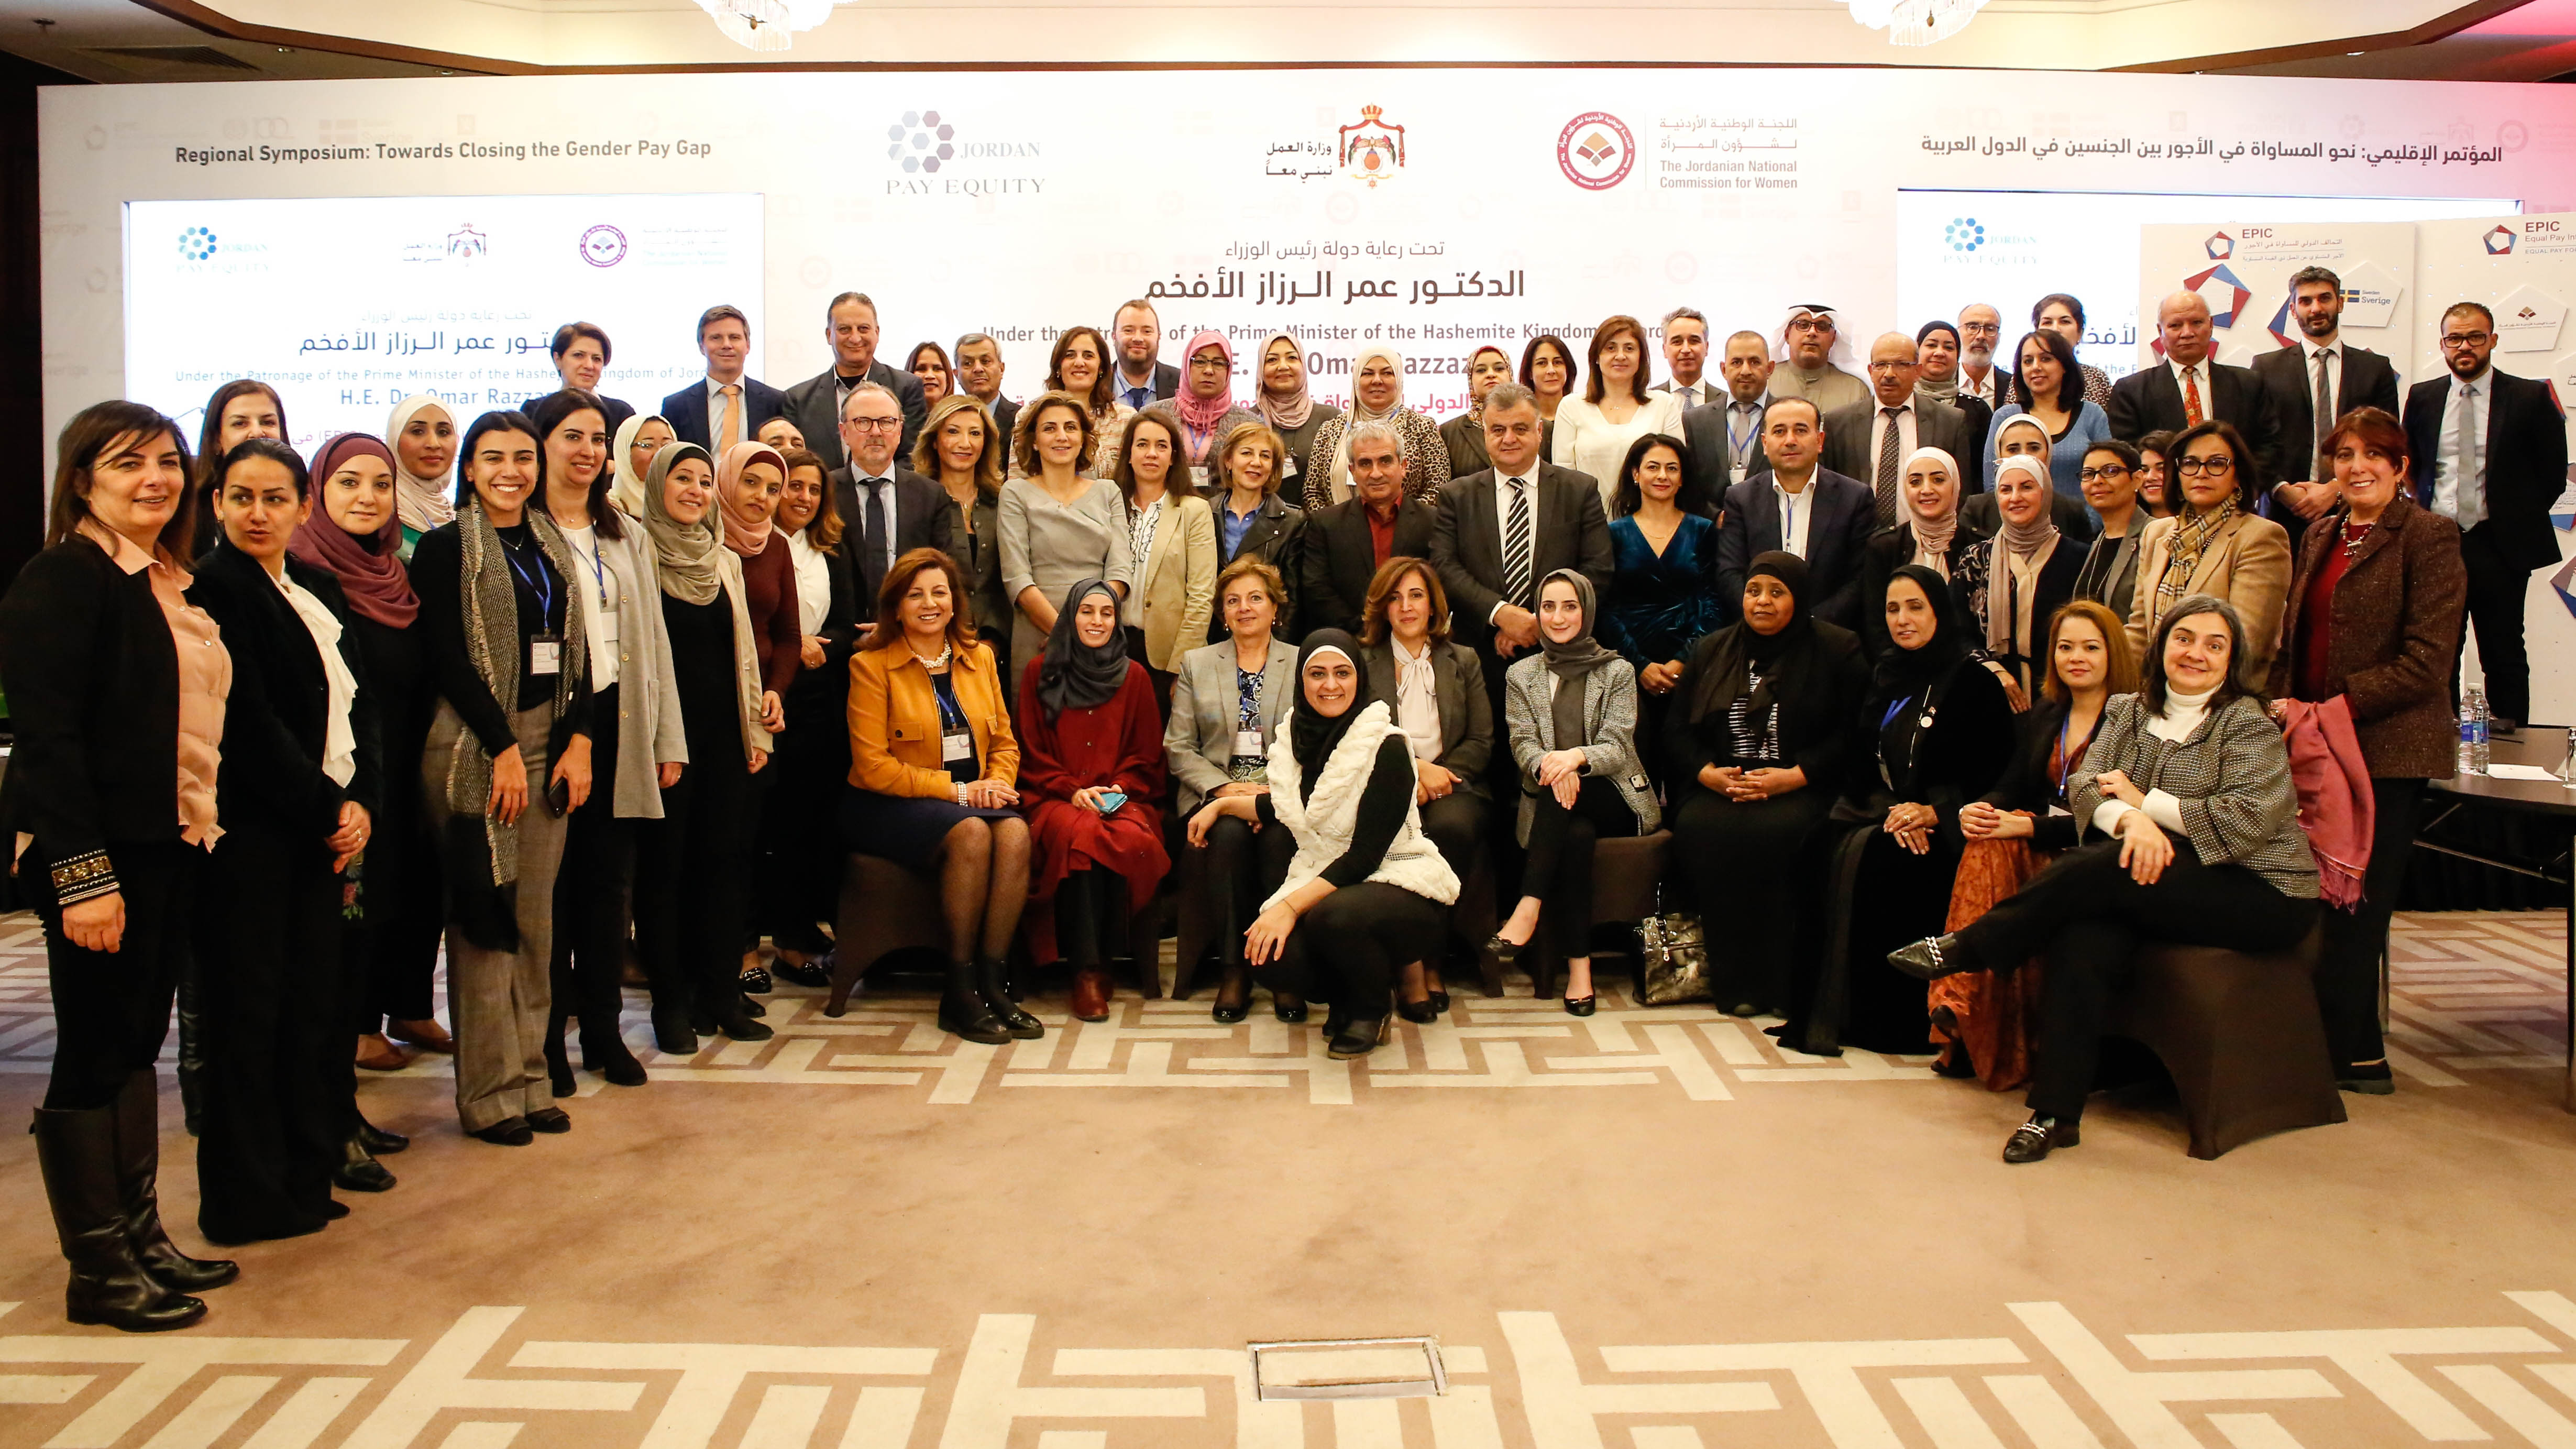 Press release: Arab States pledge to reduce gender pay gap in the region